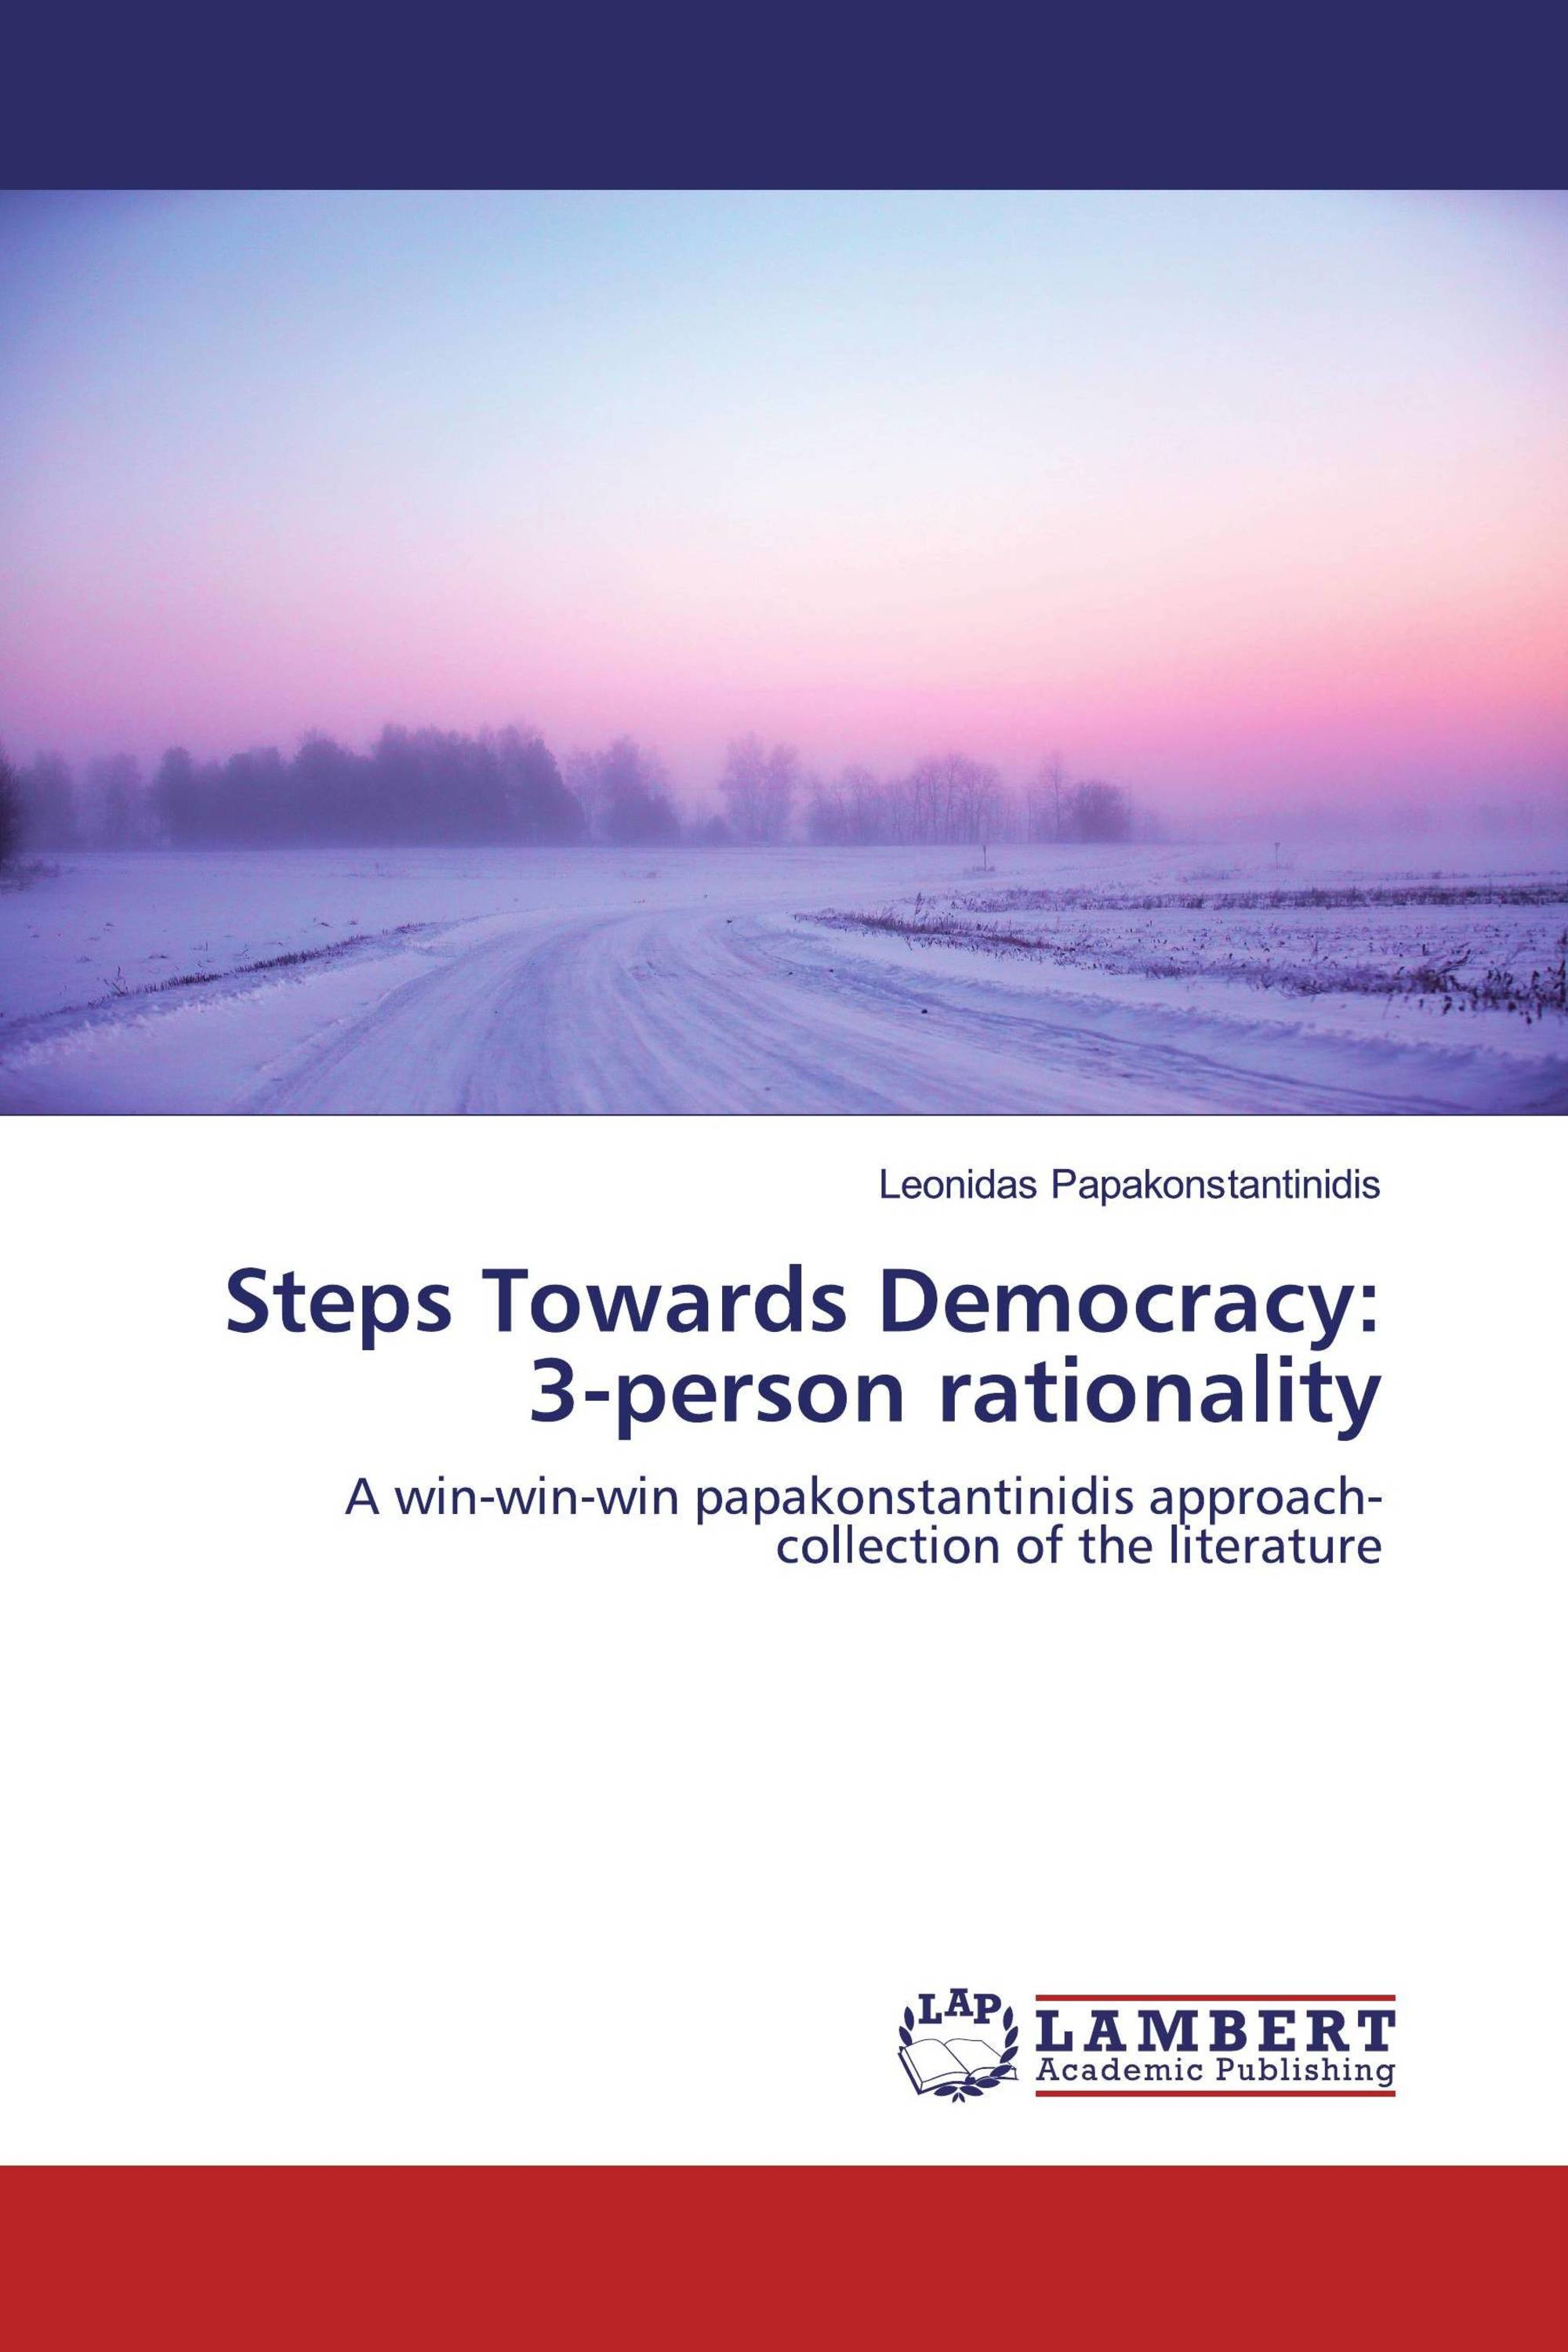 Steps Towards Democracy: 3-person rationality